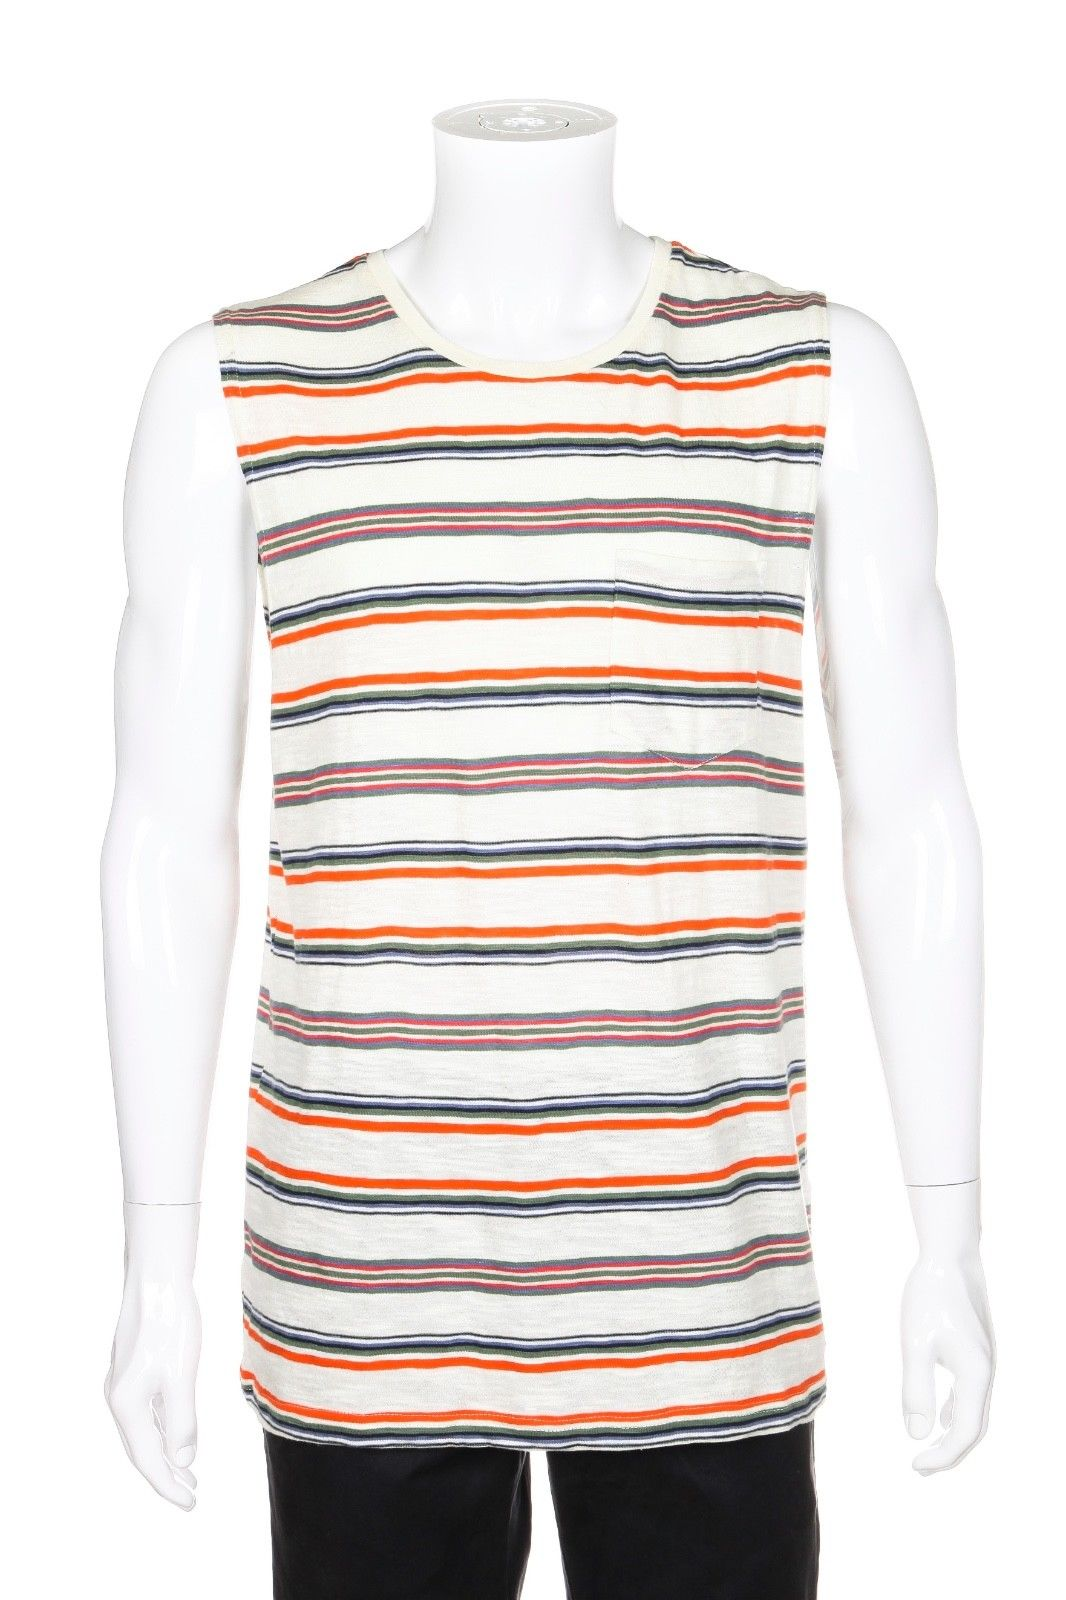 DEUS EX MACHINA Striped Tank Top Size L (New)